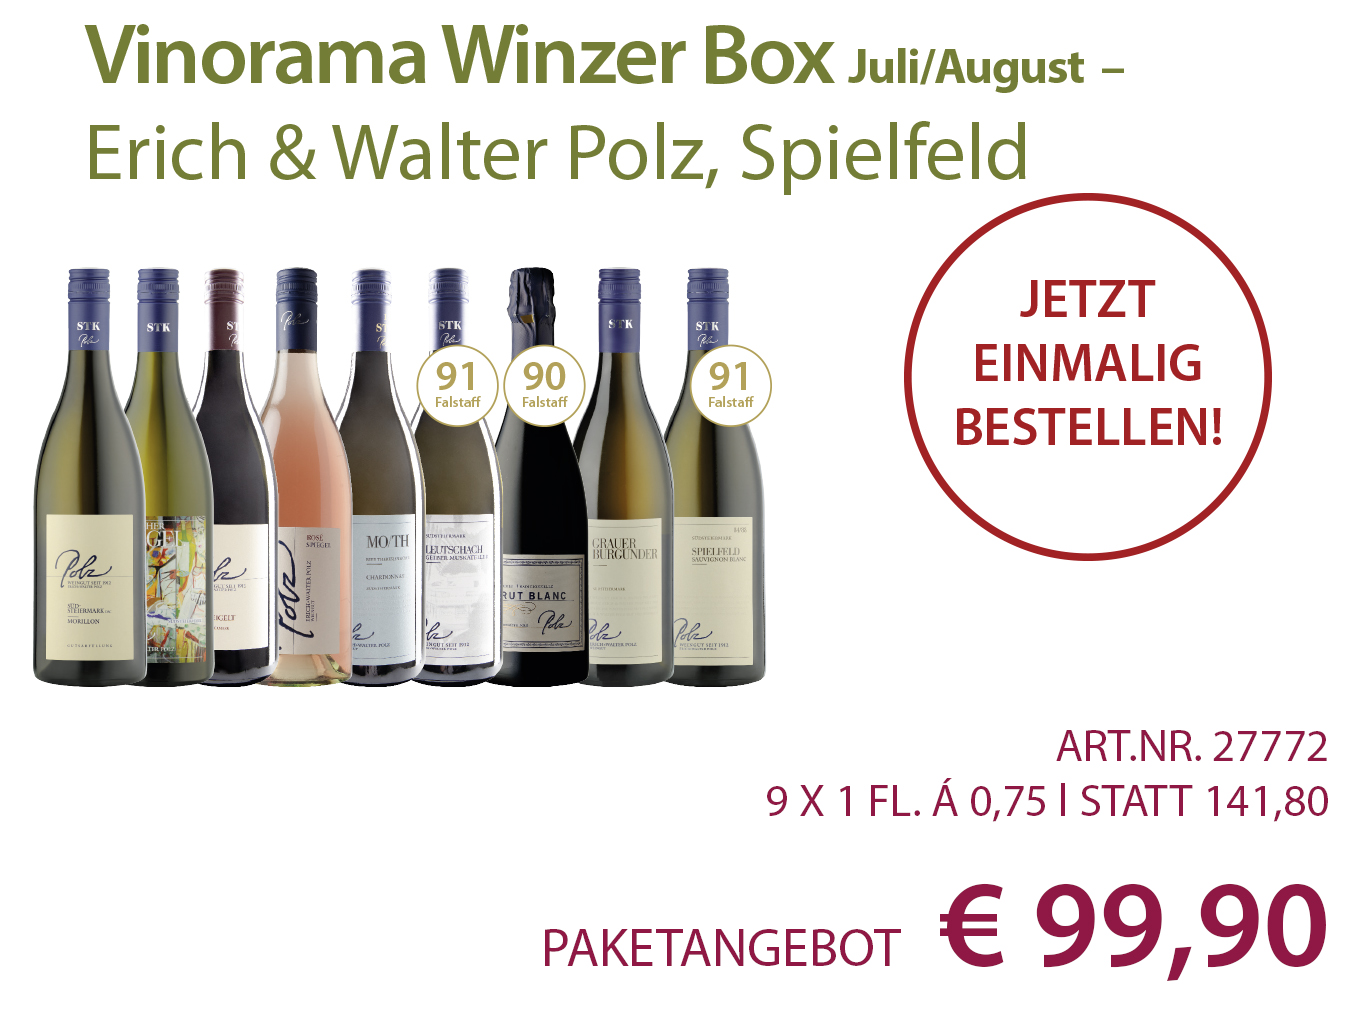 Vinorama Winzer Box Paket